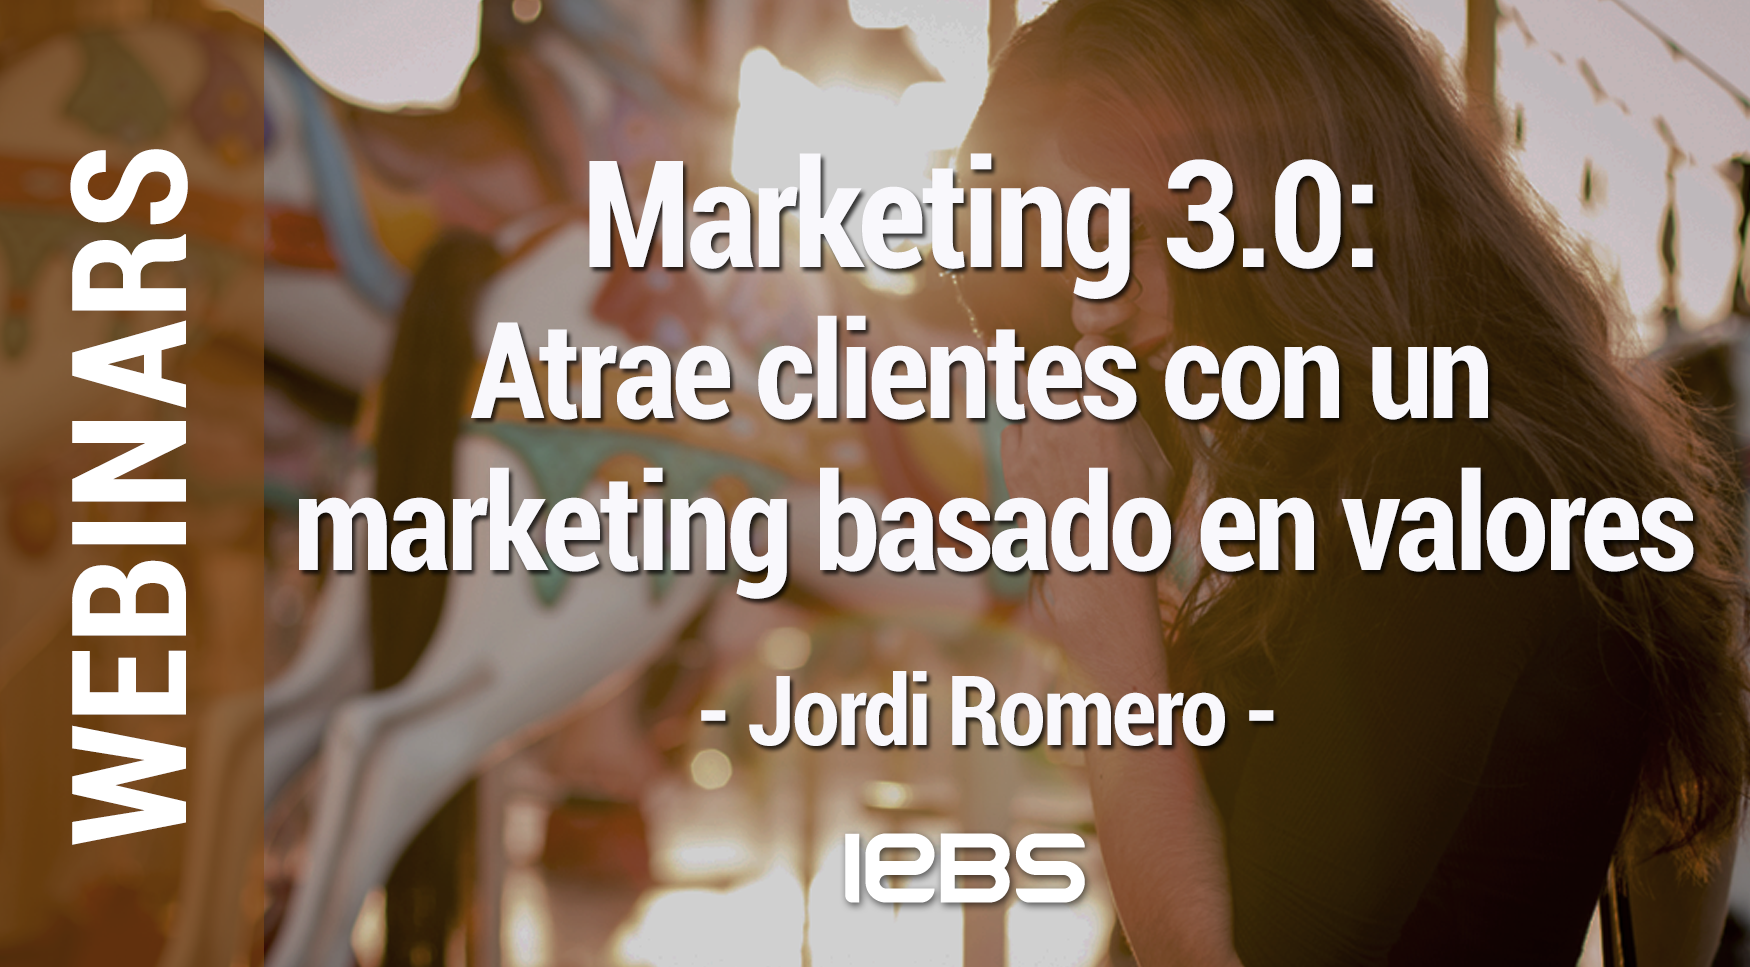 webinar marketing 3.0